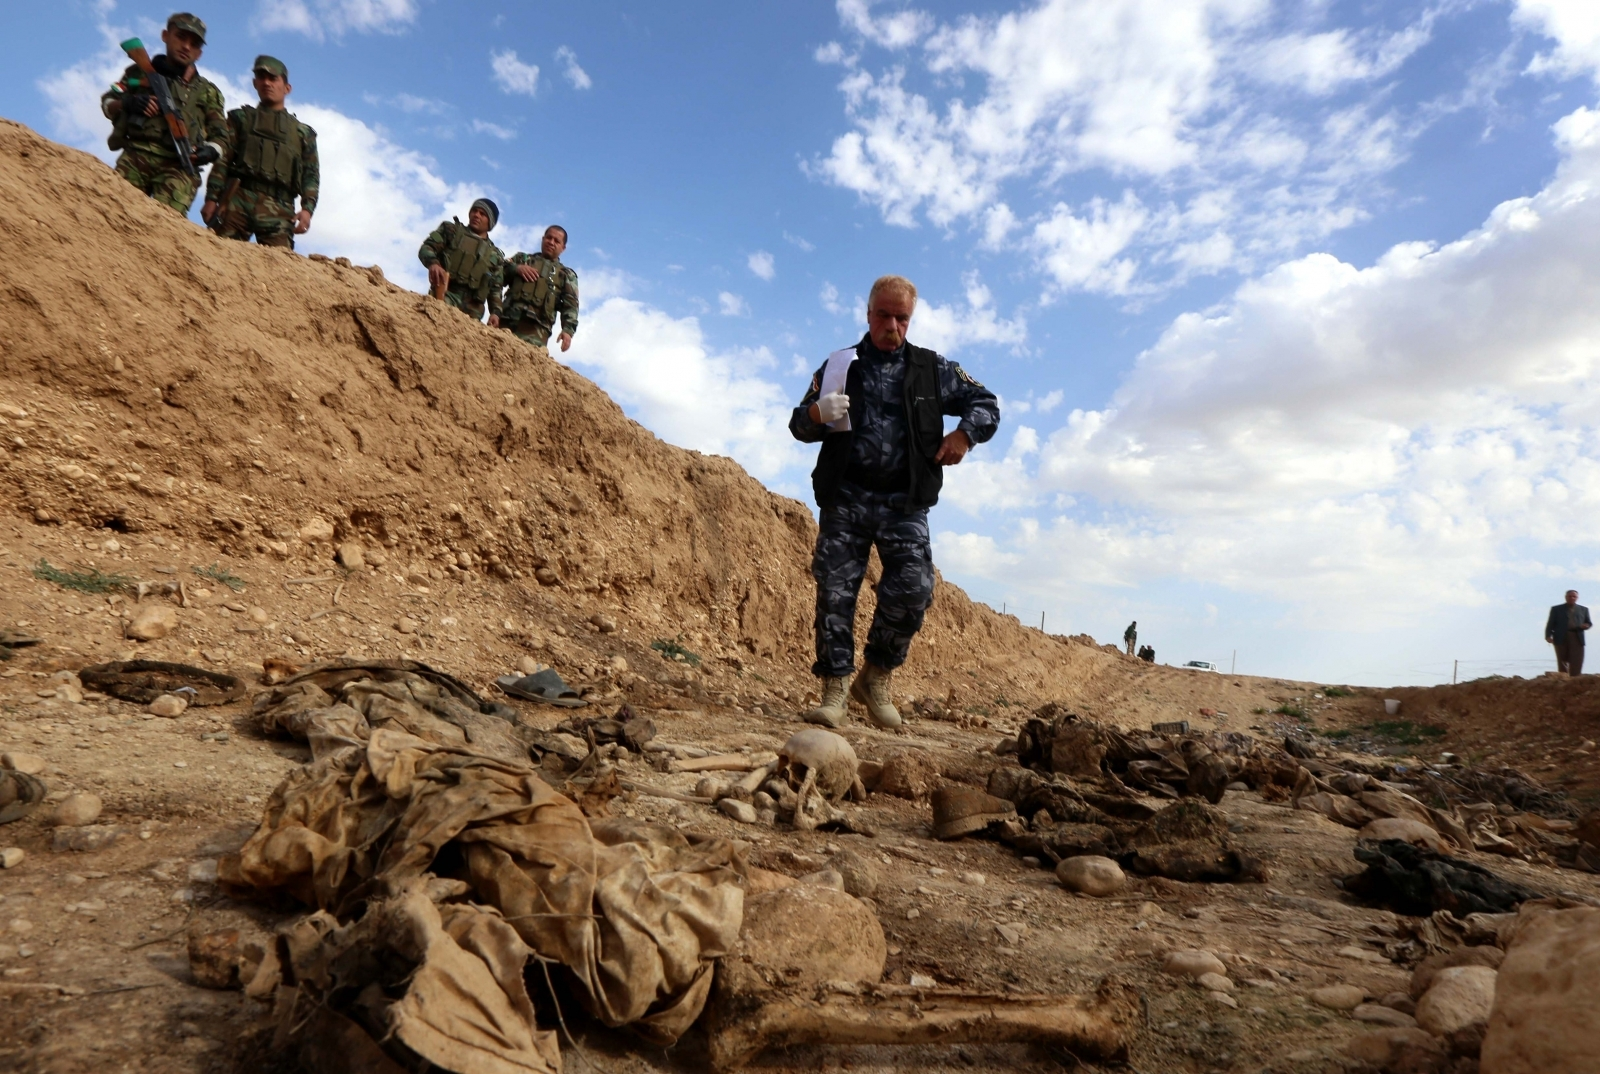 Kurdish forces look at the remains of Yazidis killed by the Isis jihadist group